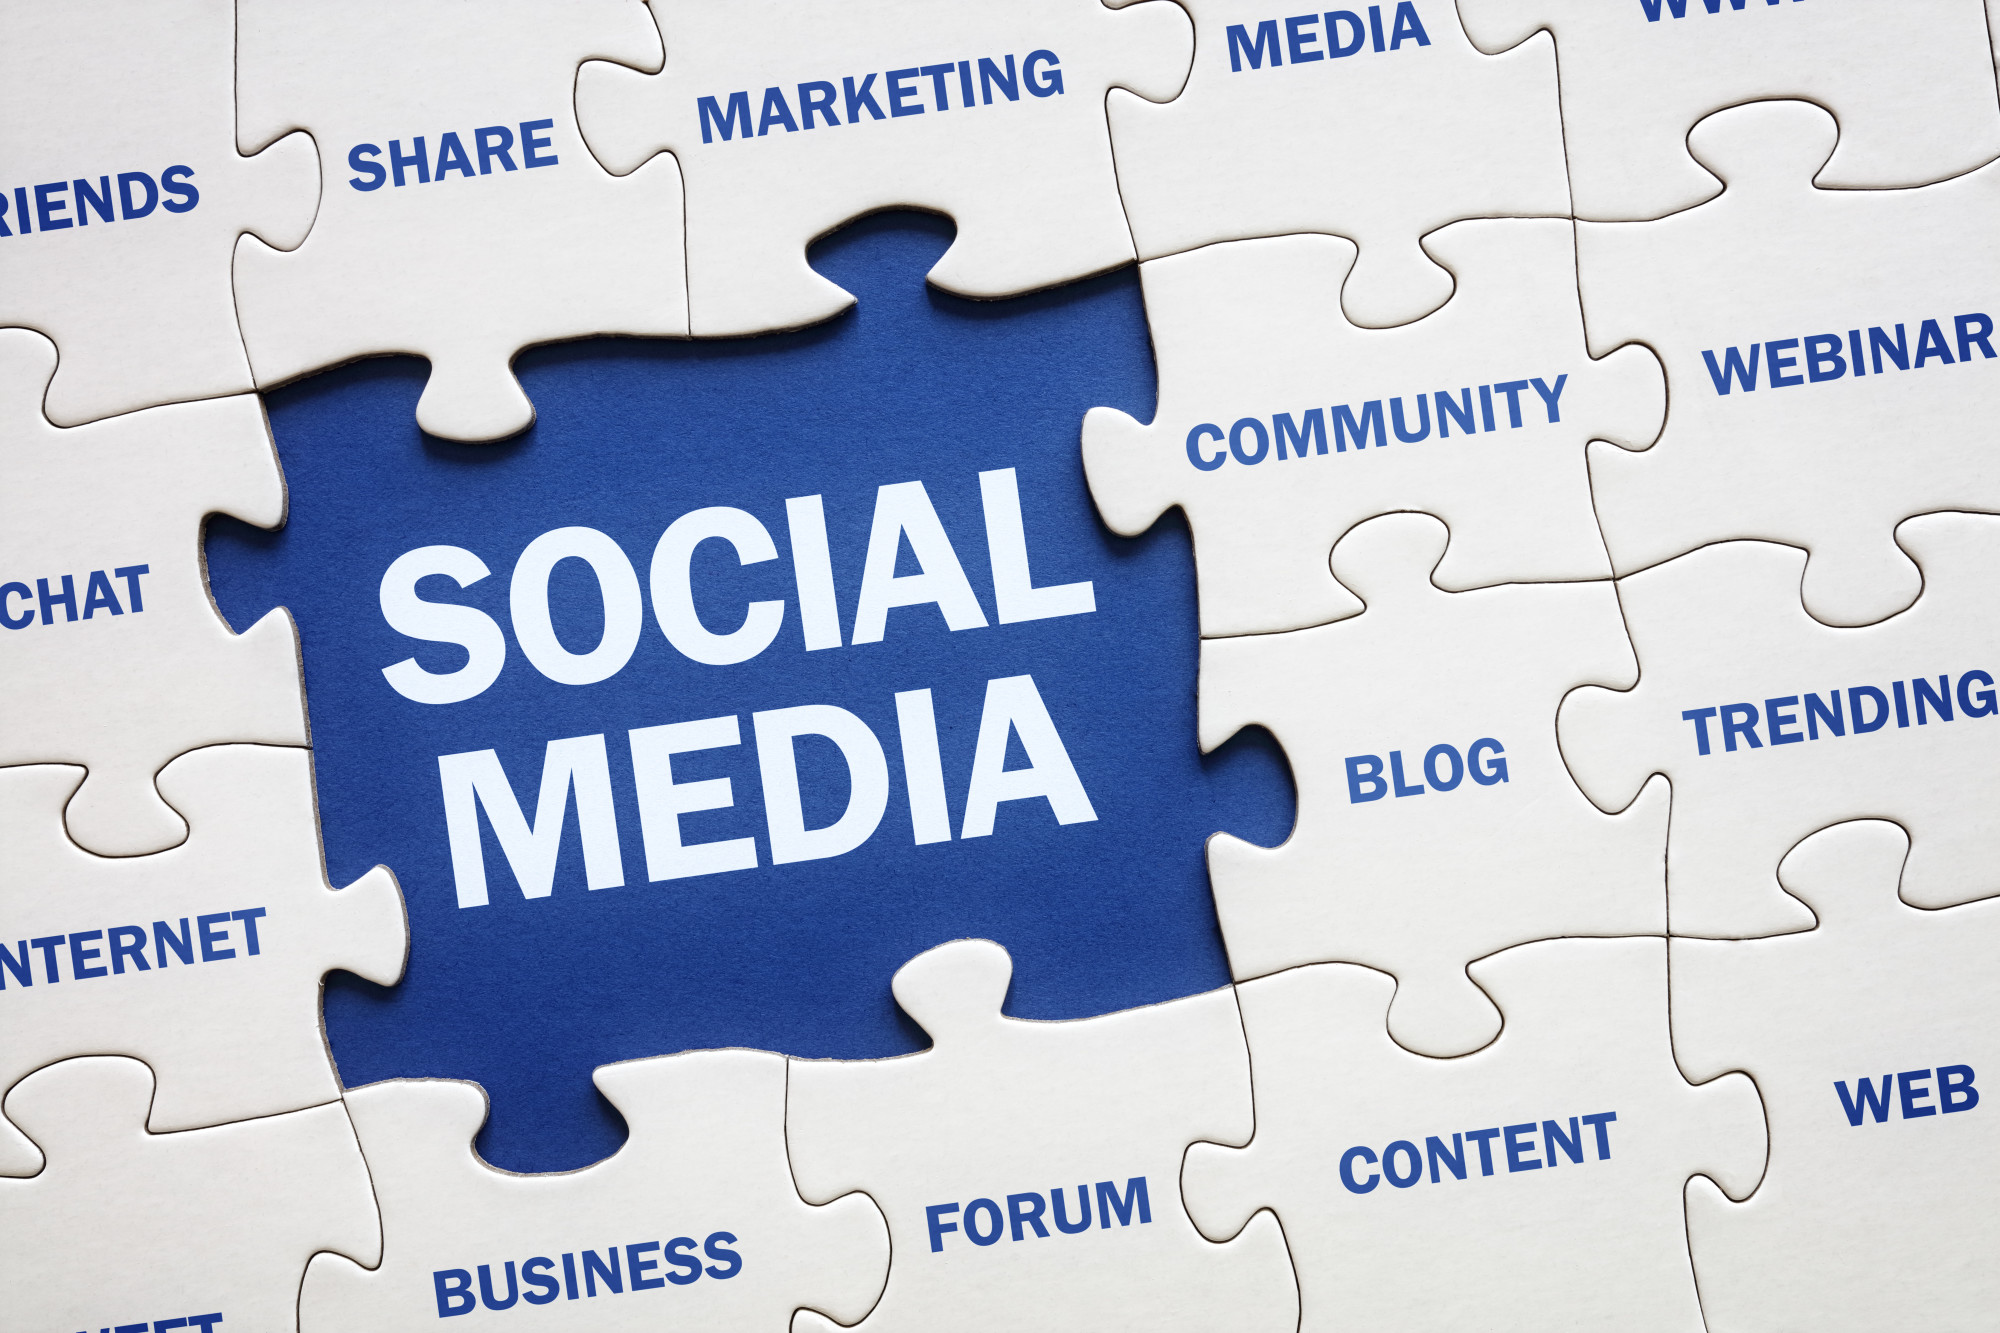 8 Tips on Using SEO and Social Media for Marketing